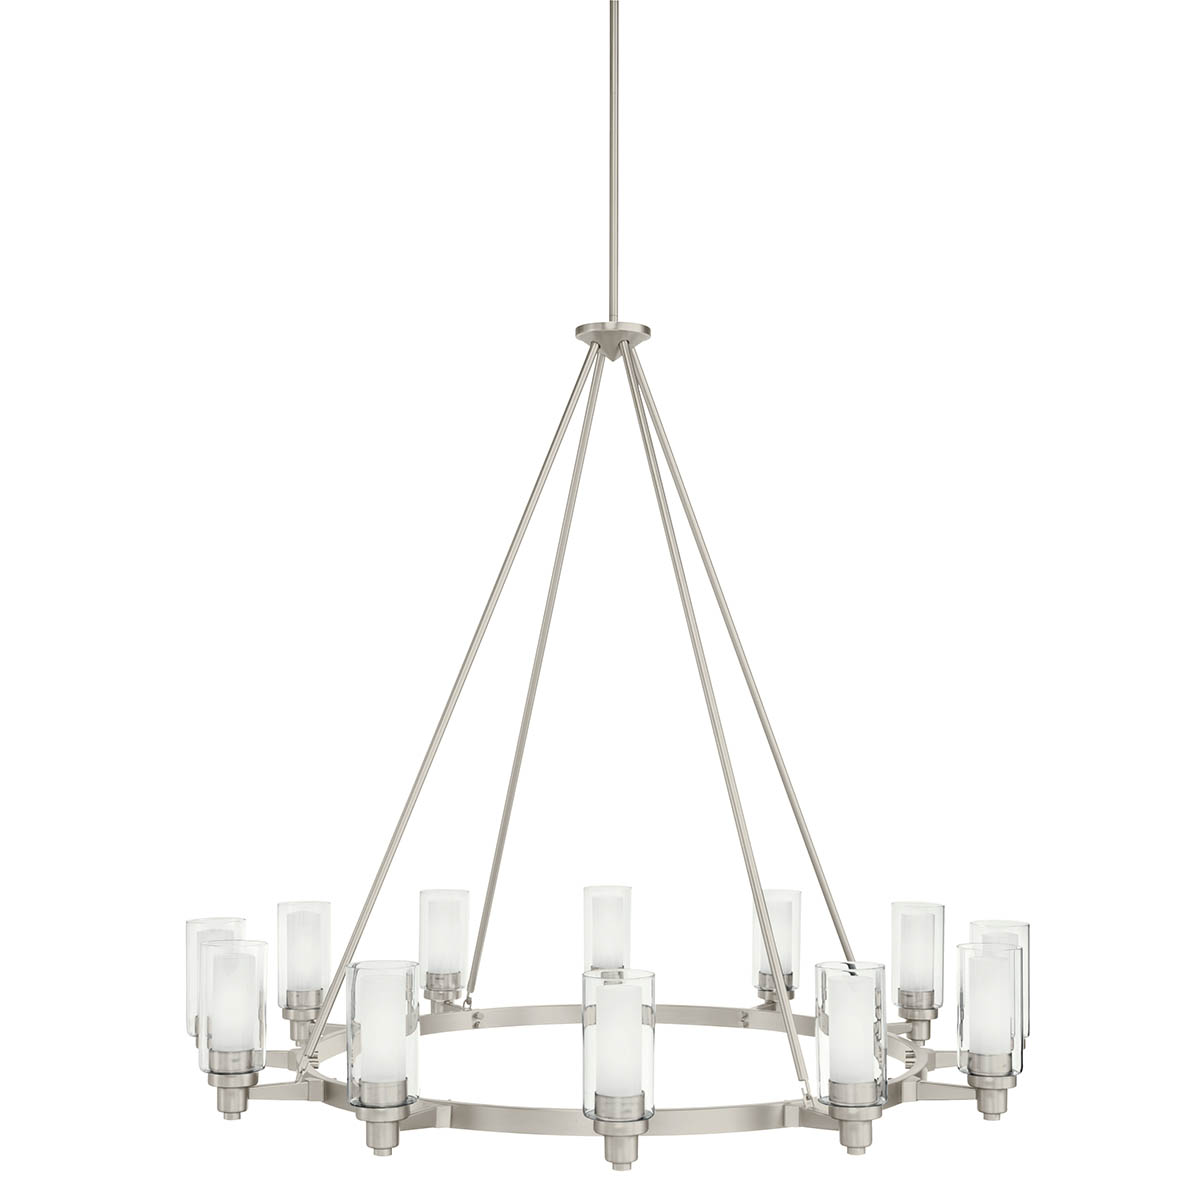 circolo 41 12 light round chandelier clear outer and satin etched inner cylinders brushed nickel